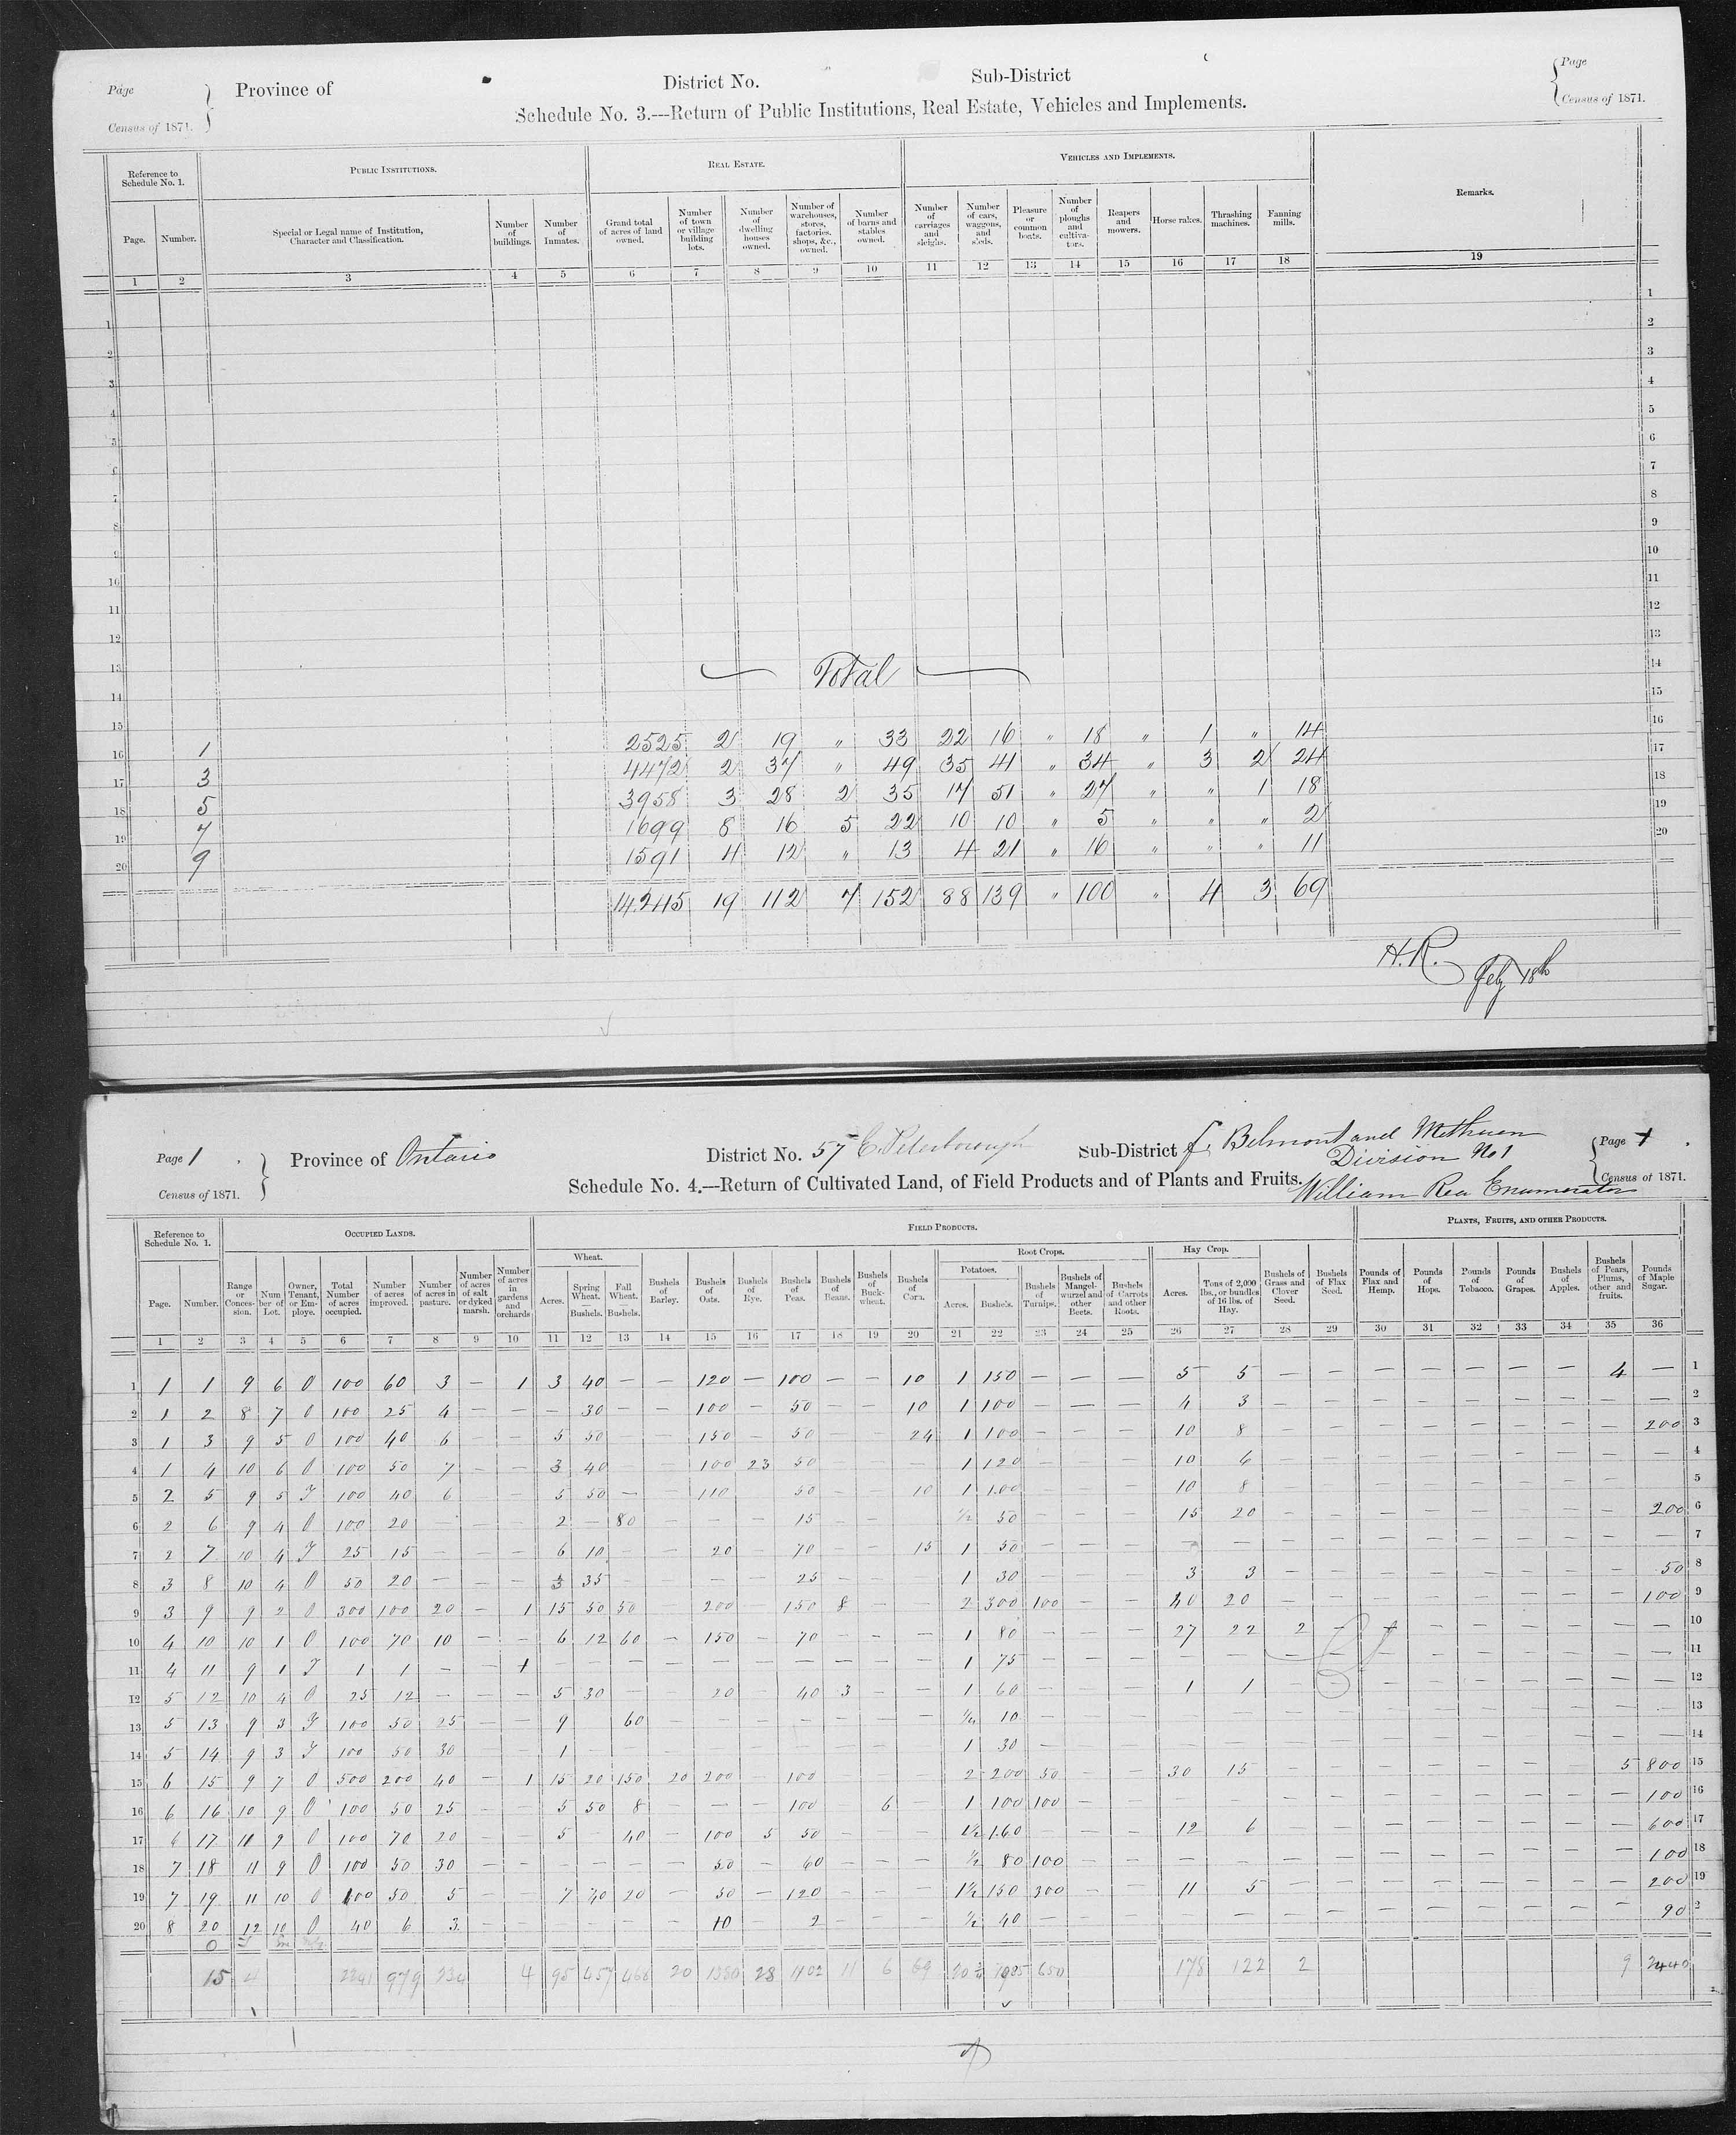 Title: Census of Canada, 1871 - Mikan Number: 142105 - Microform: c-9988